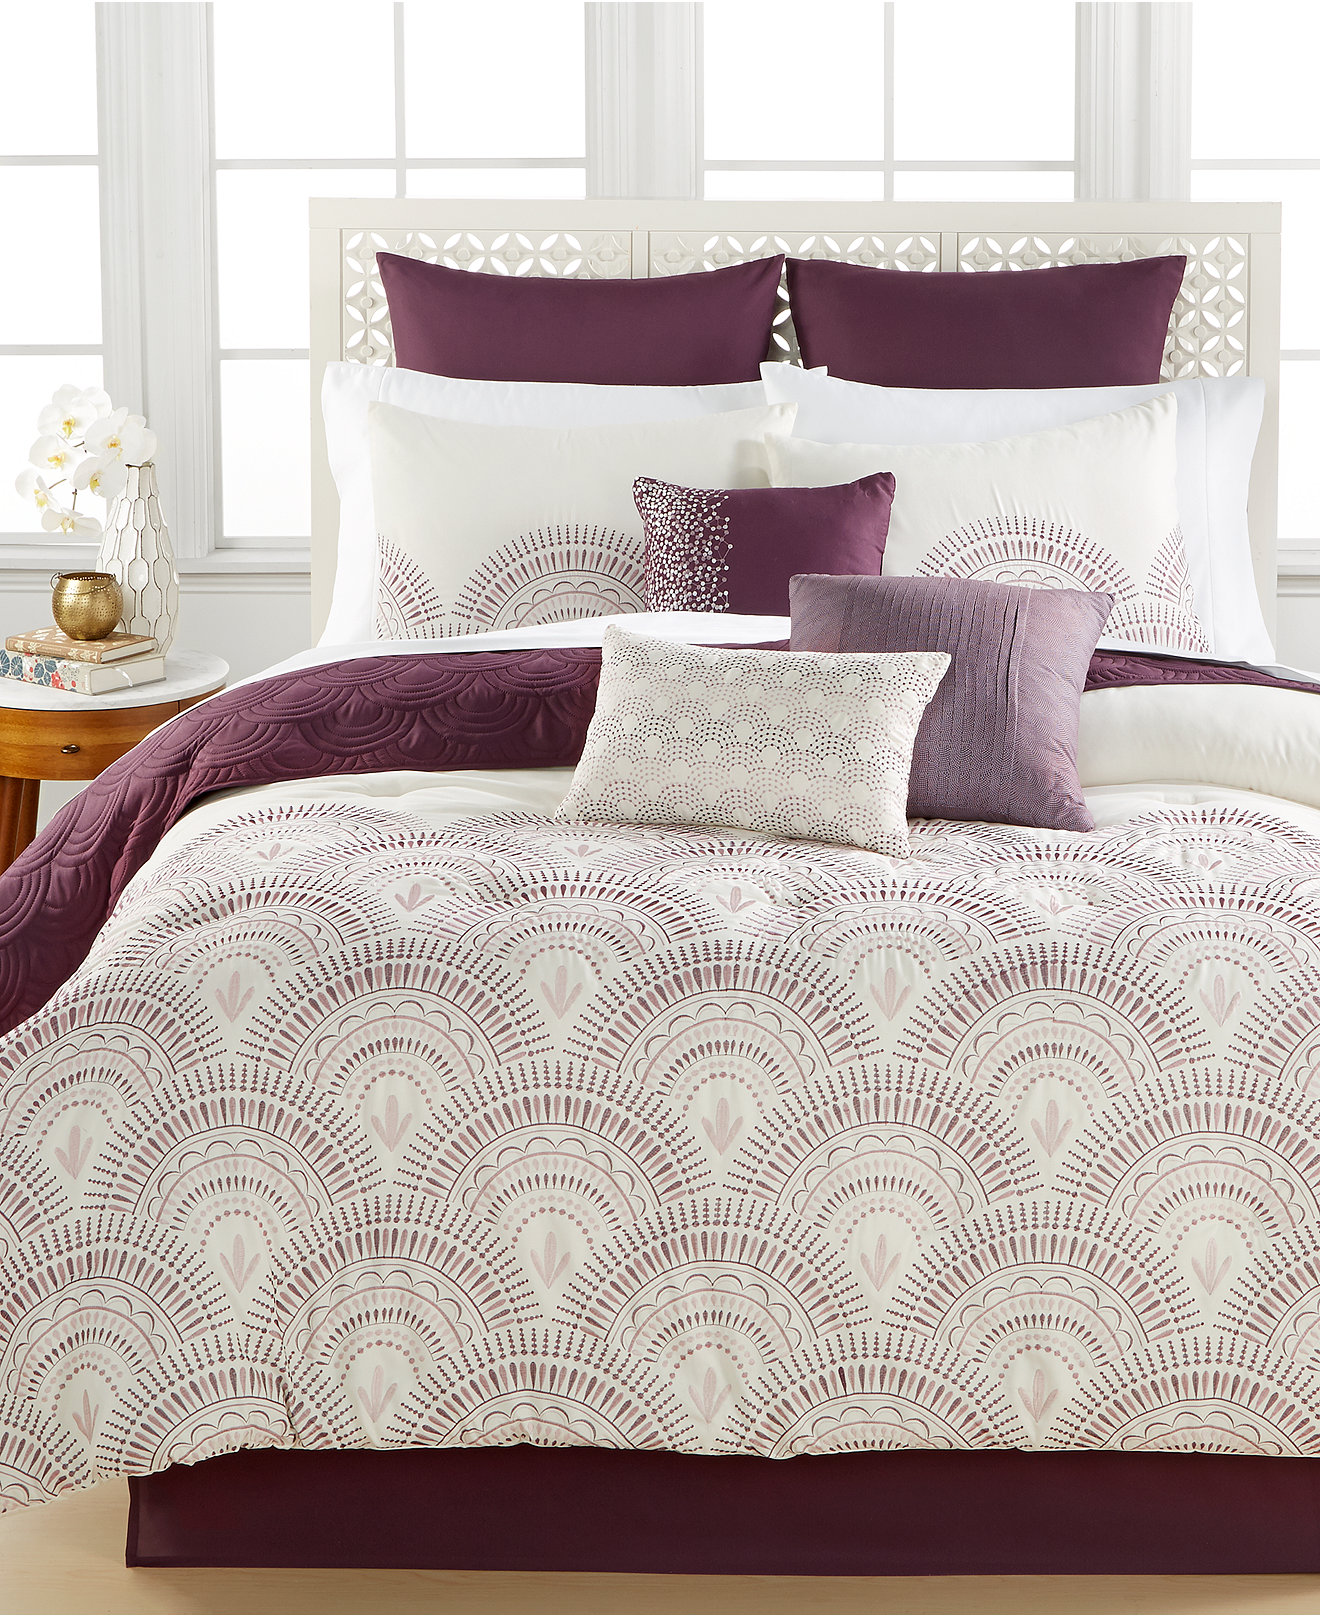 Macys Sell: 10 Piece Bedding Sets As Low As $39